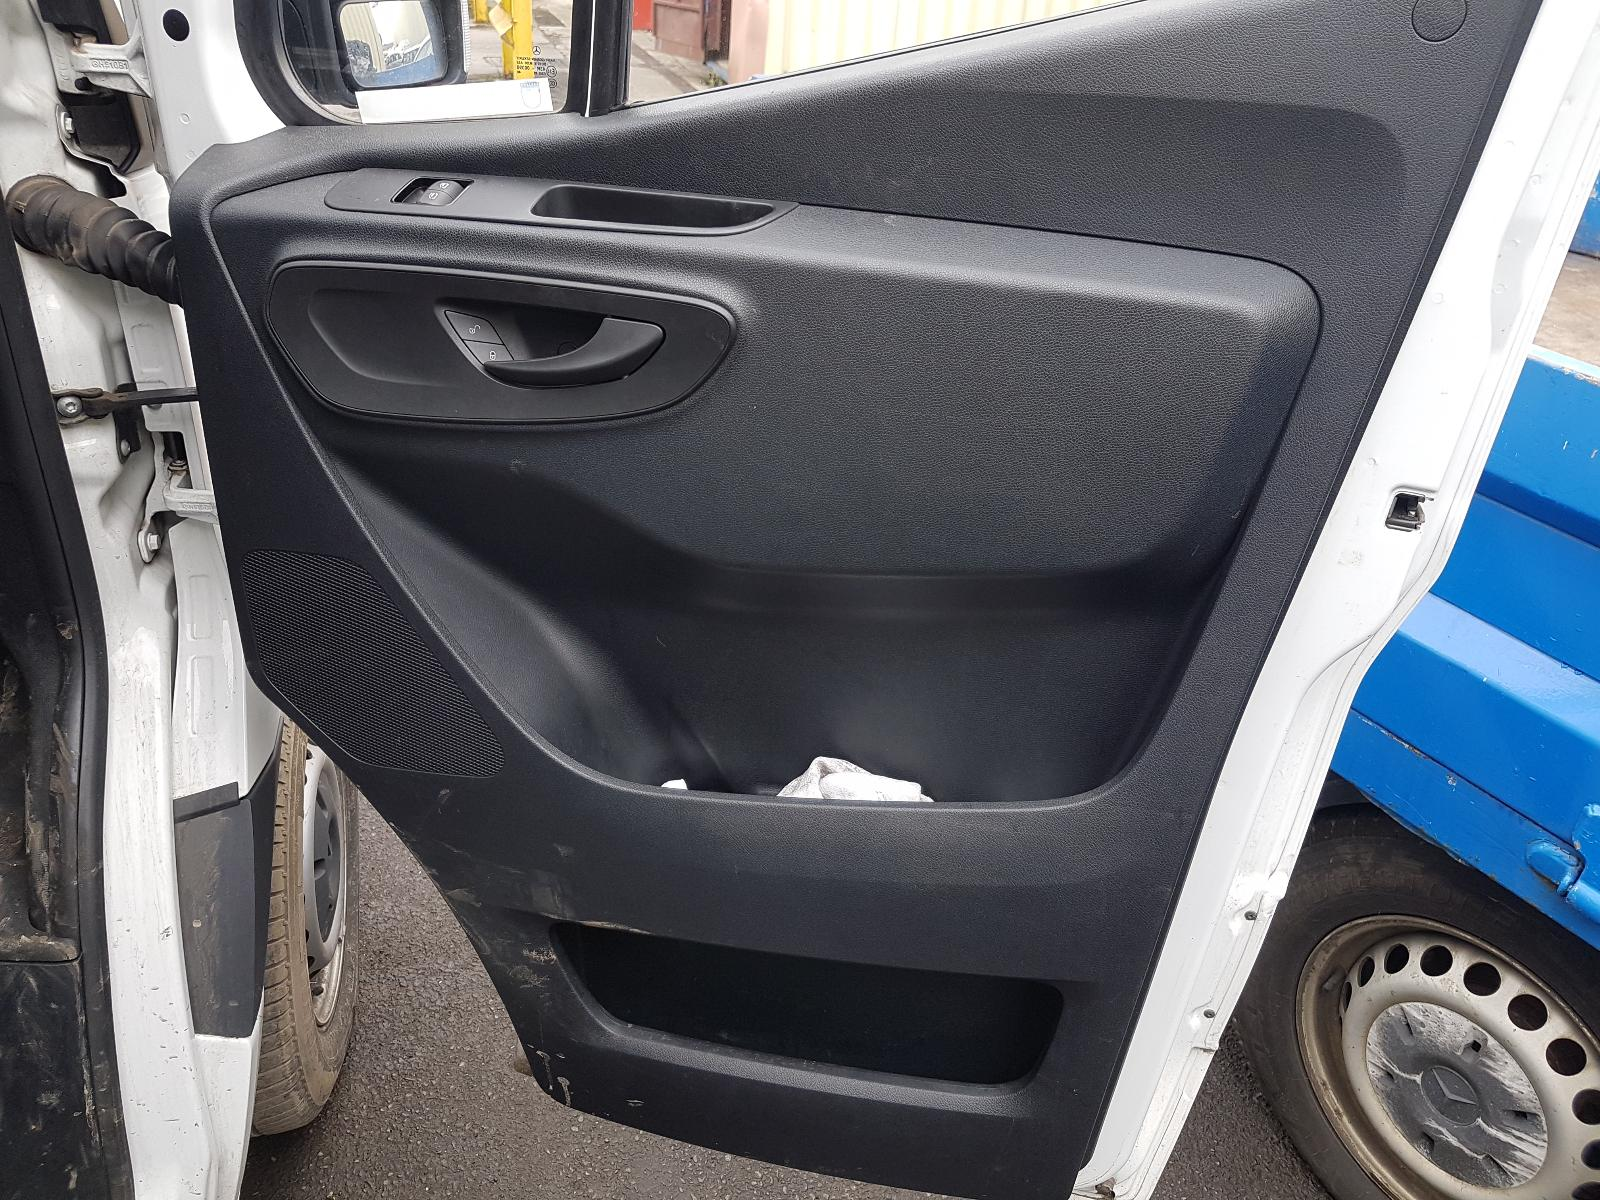 View Auto part Fuel Tank Mercedes Sprinter 2019